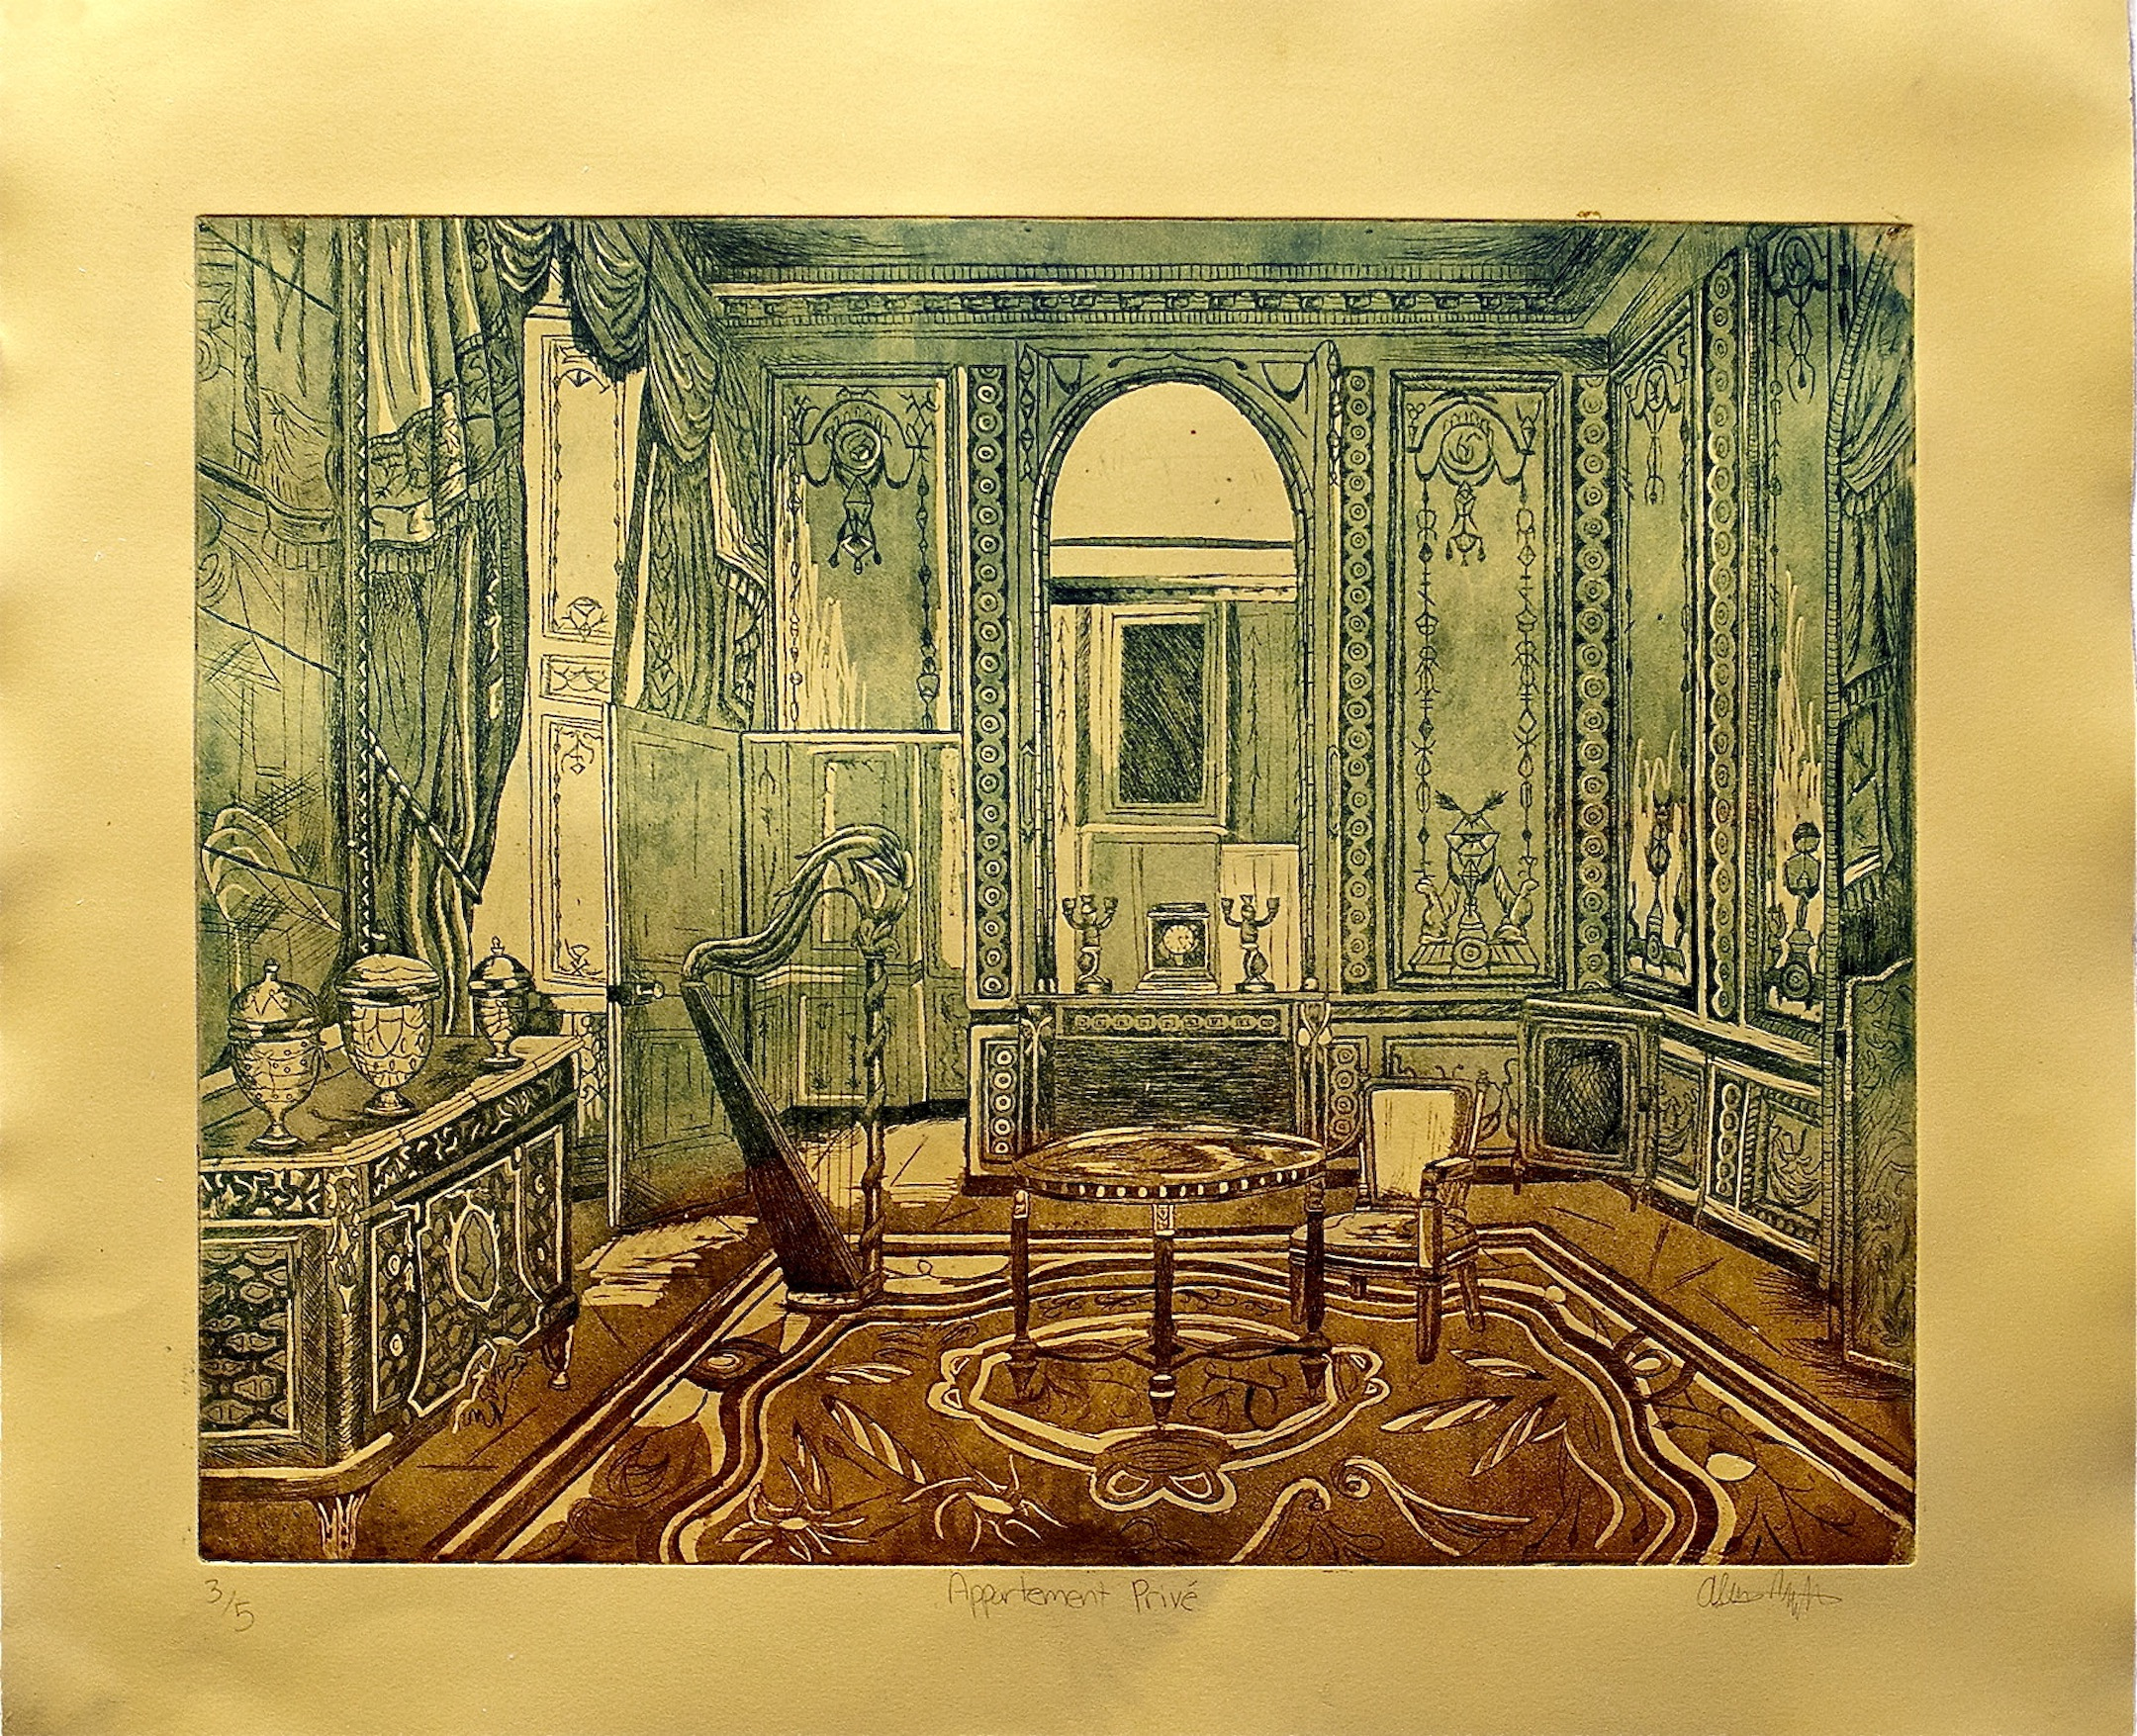 Appartement Prive. Etching. 18x24. Edition of 5. Price upon request.